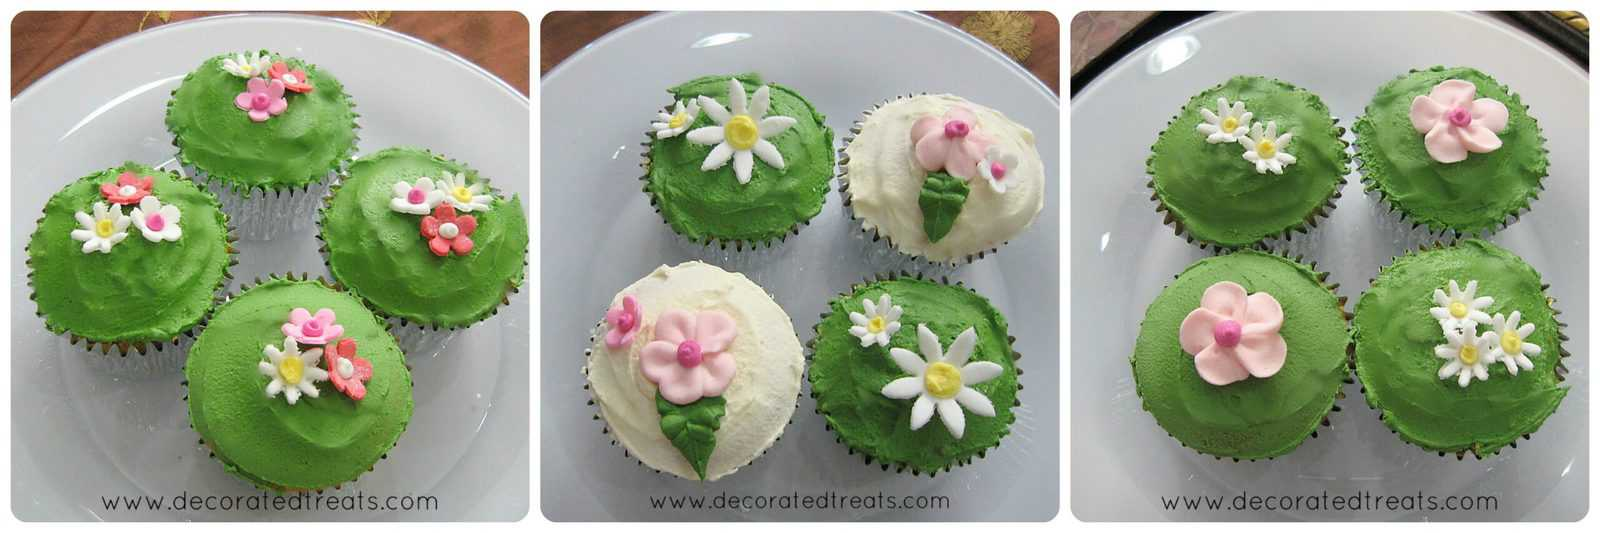 3 sets of cupcakes covered in green icing and decorated in floral design